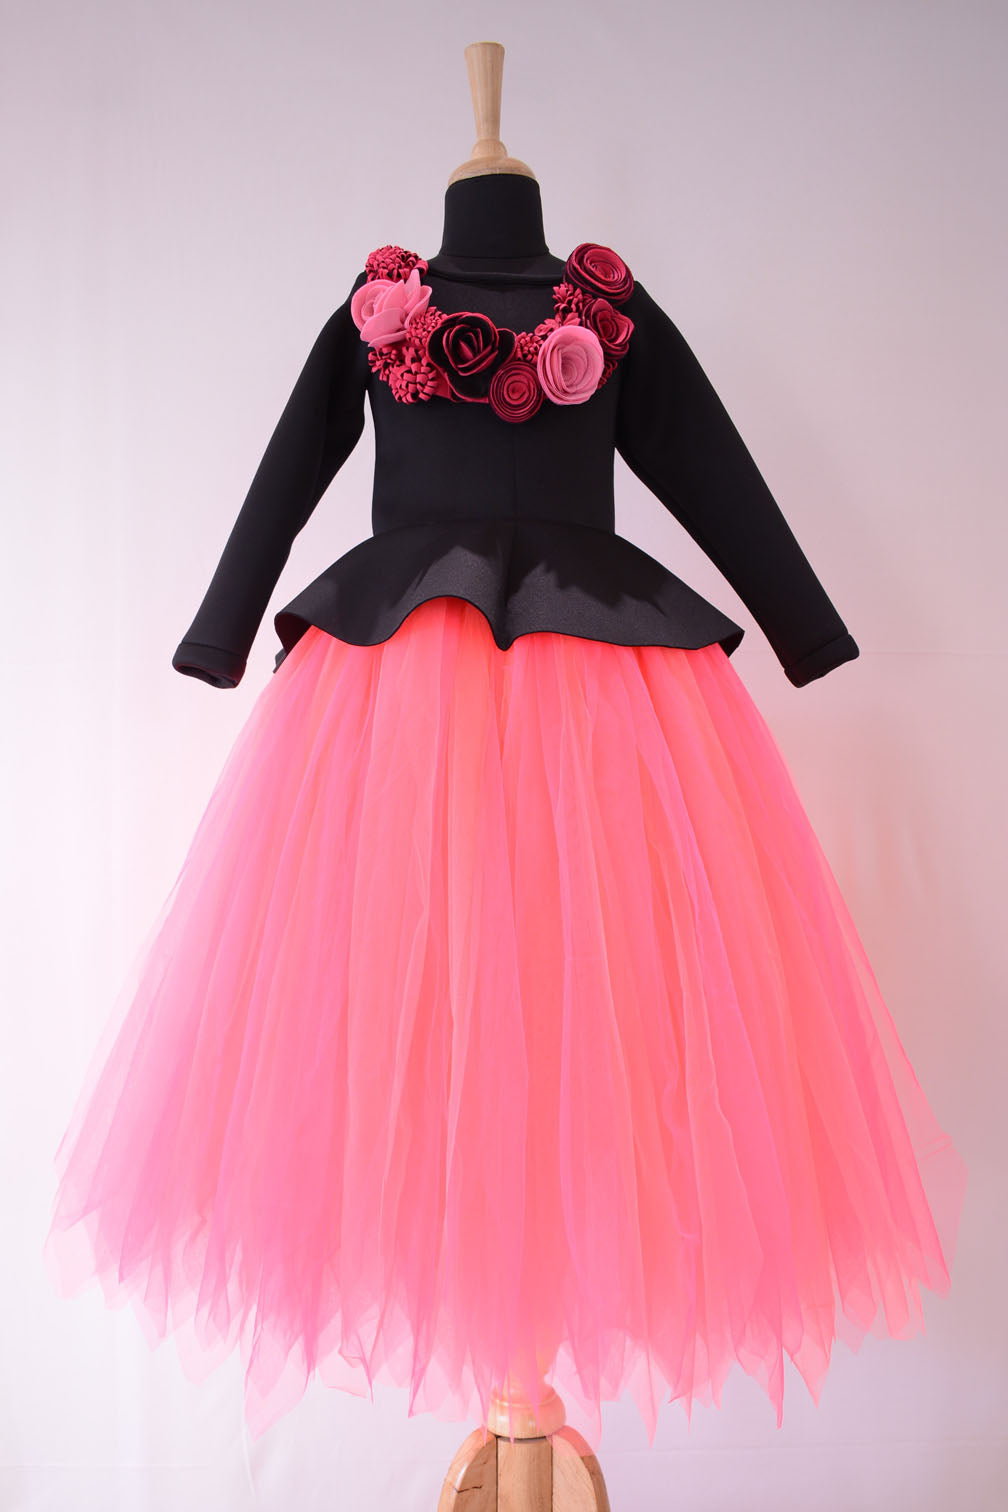 6c2a900c67 Designer Dress Black necklace peplum with neon pink long tutu skirt –  Stylemylo